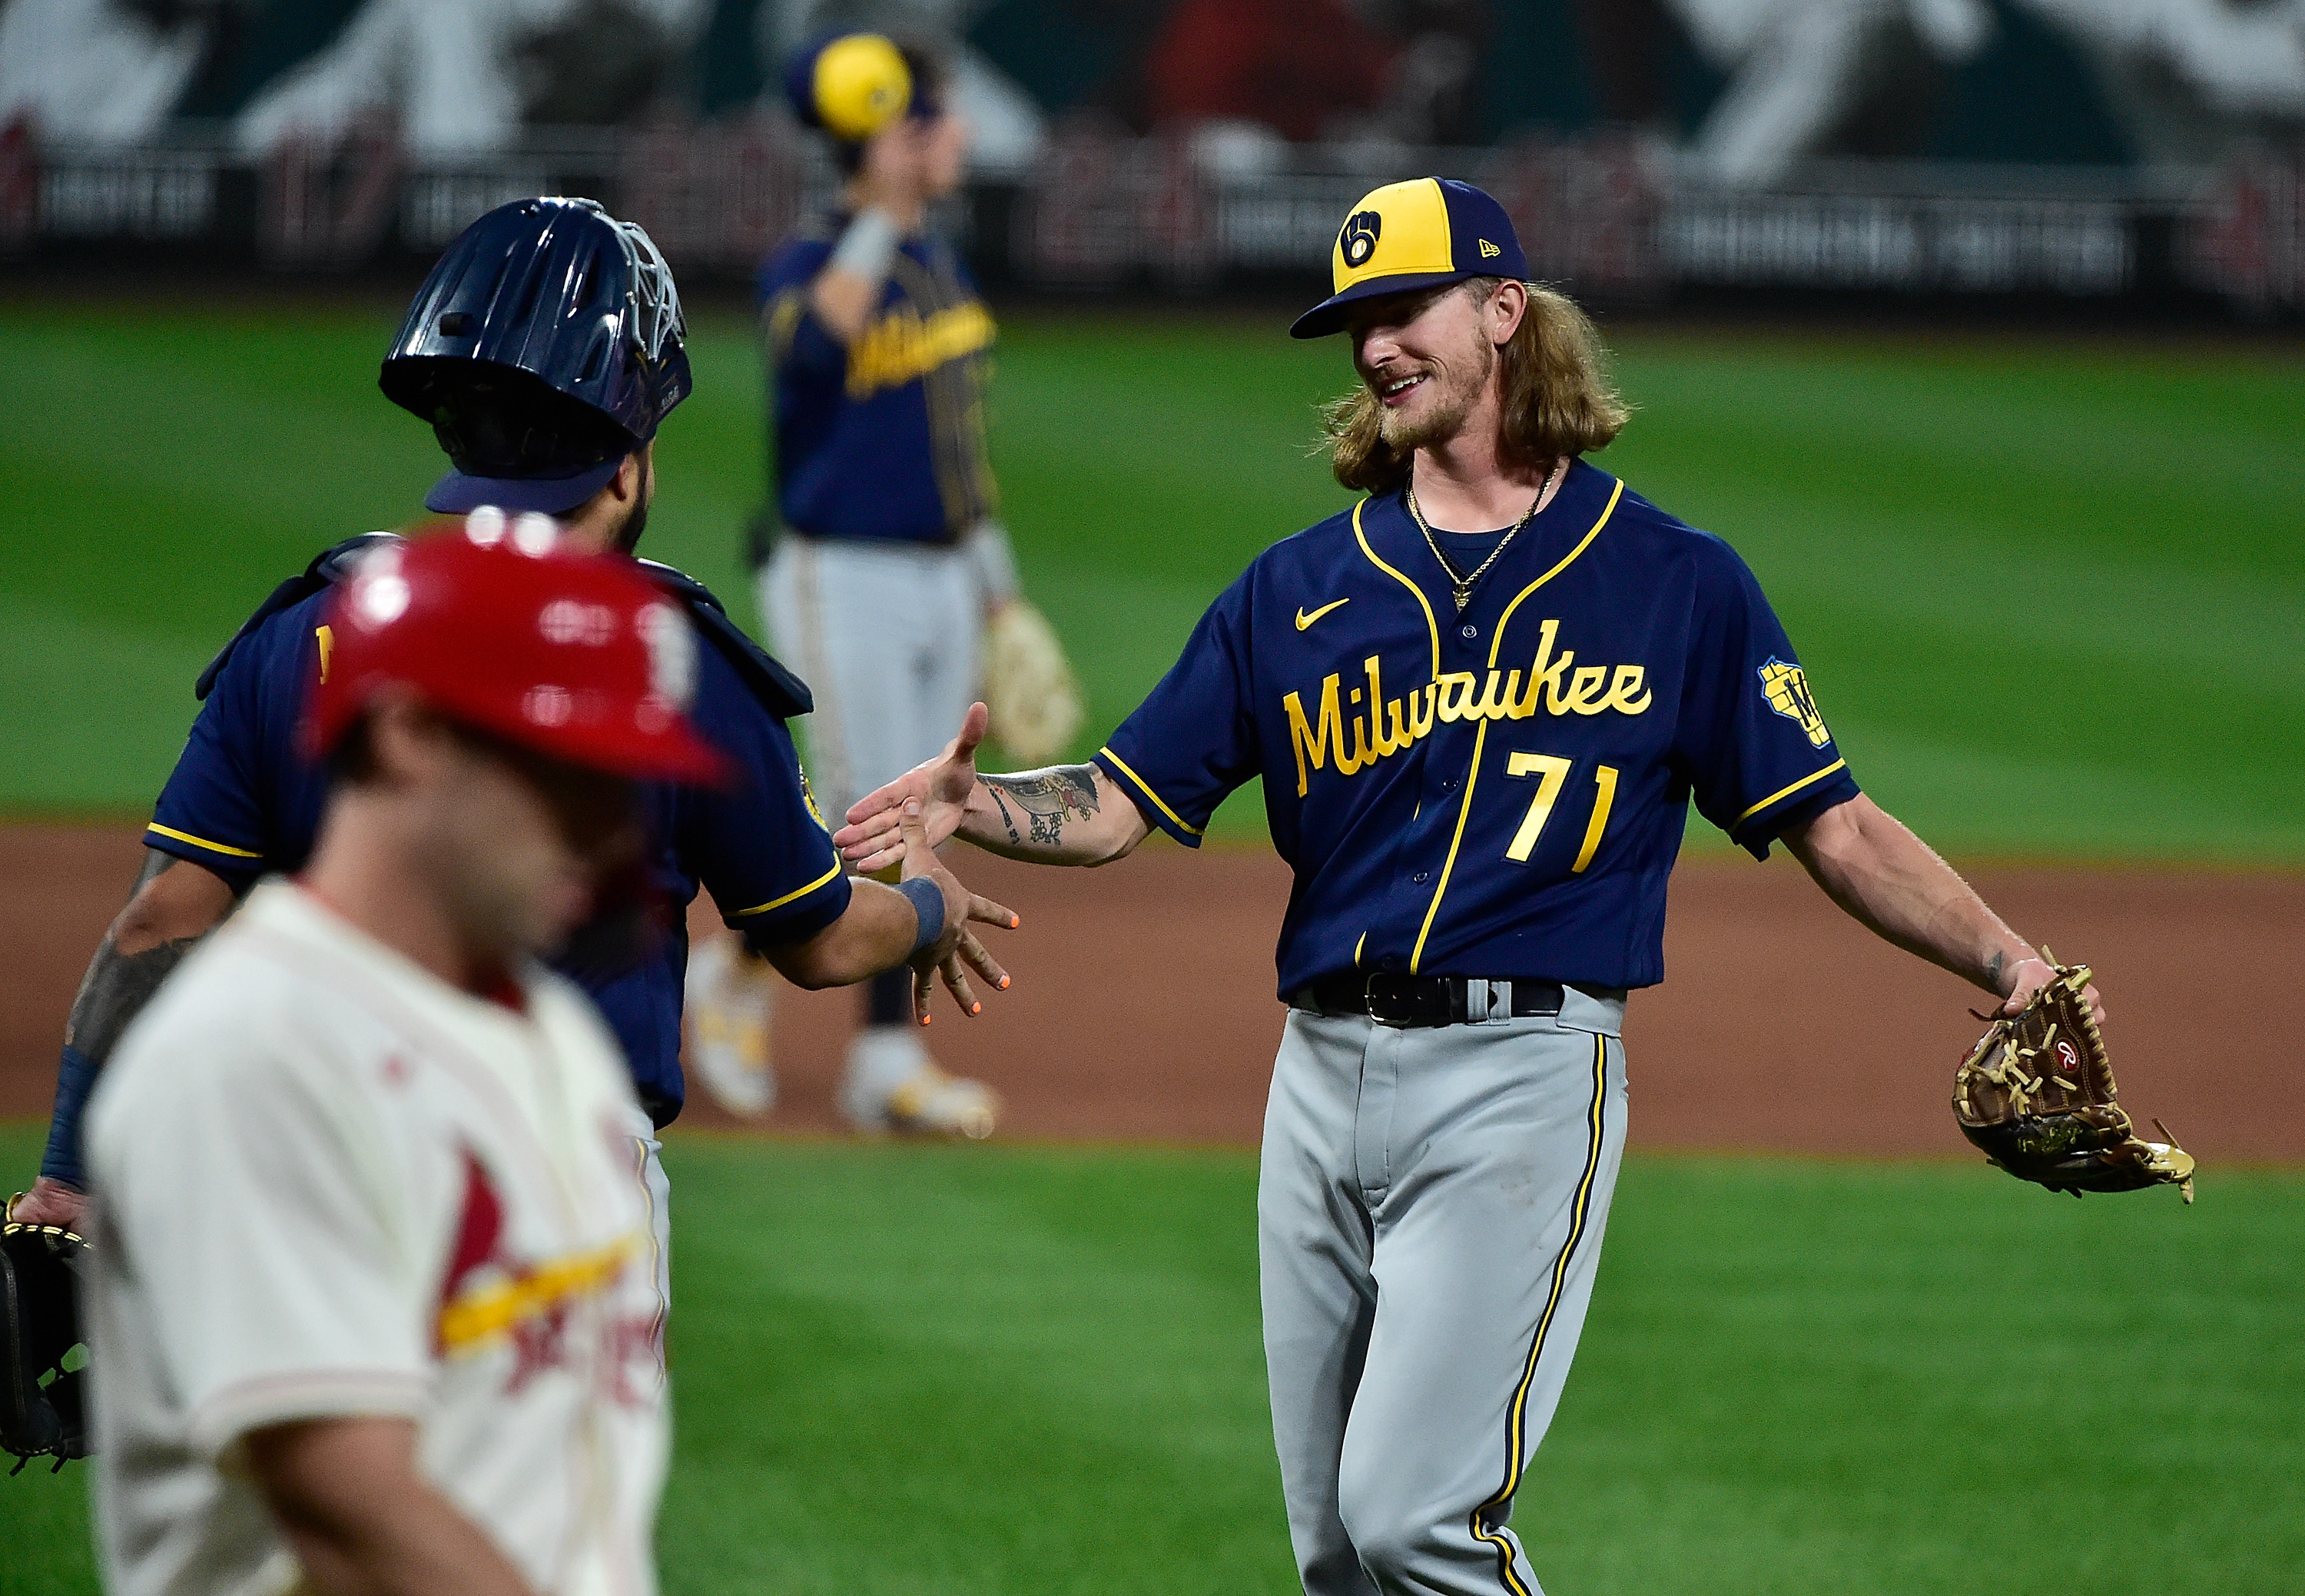 Milwaukee Brewers relief pitcher Josh Hader celebrates with catcher Omar Narvaez after getting St. Louis Cardinals first baseman Paul Goldschmidt to pop out to end the game at Busch Stadium.